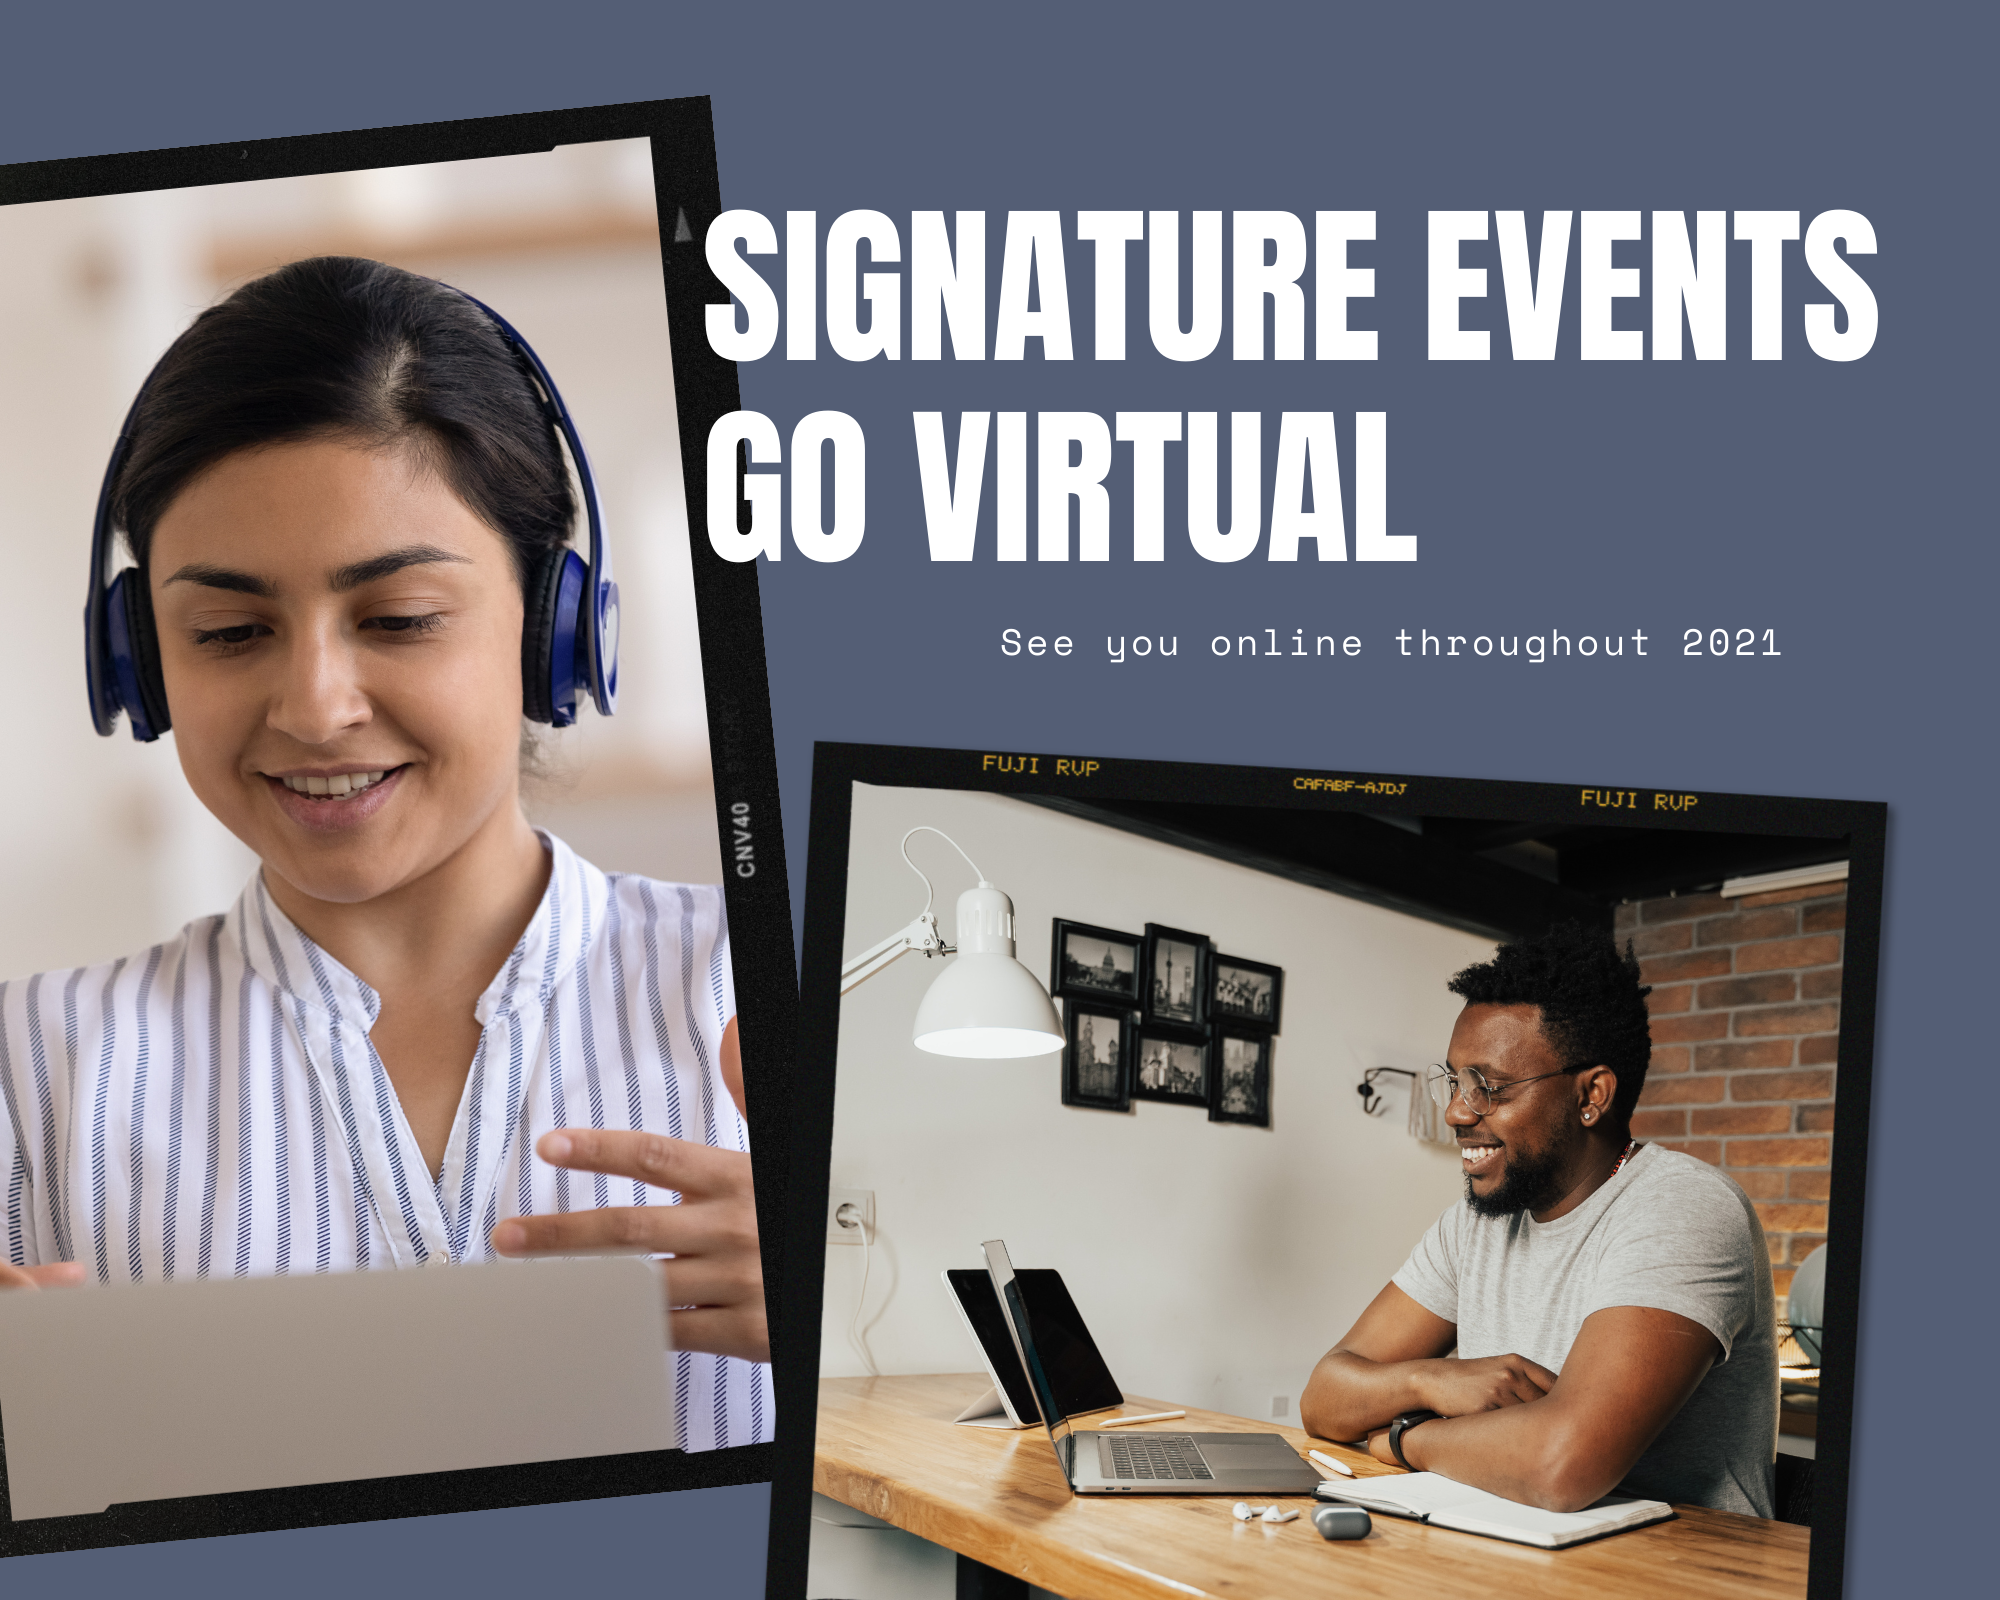 Signature Events Go Virtual image